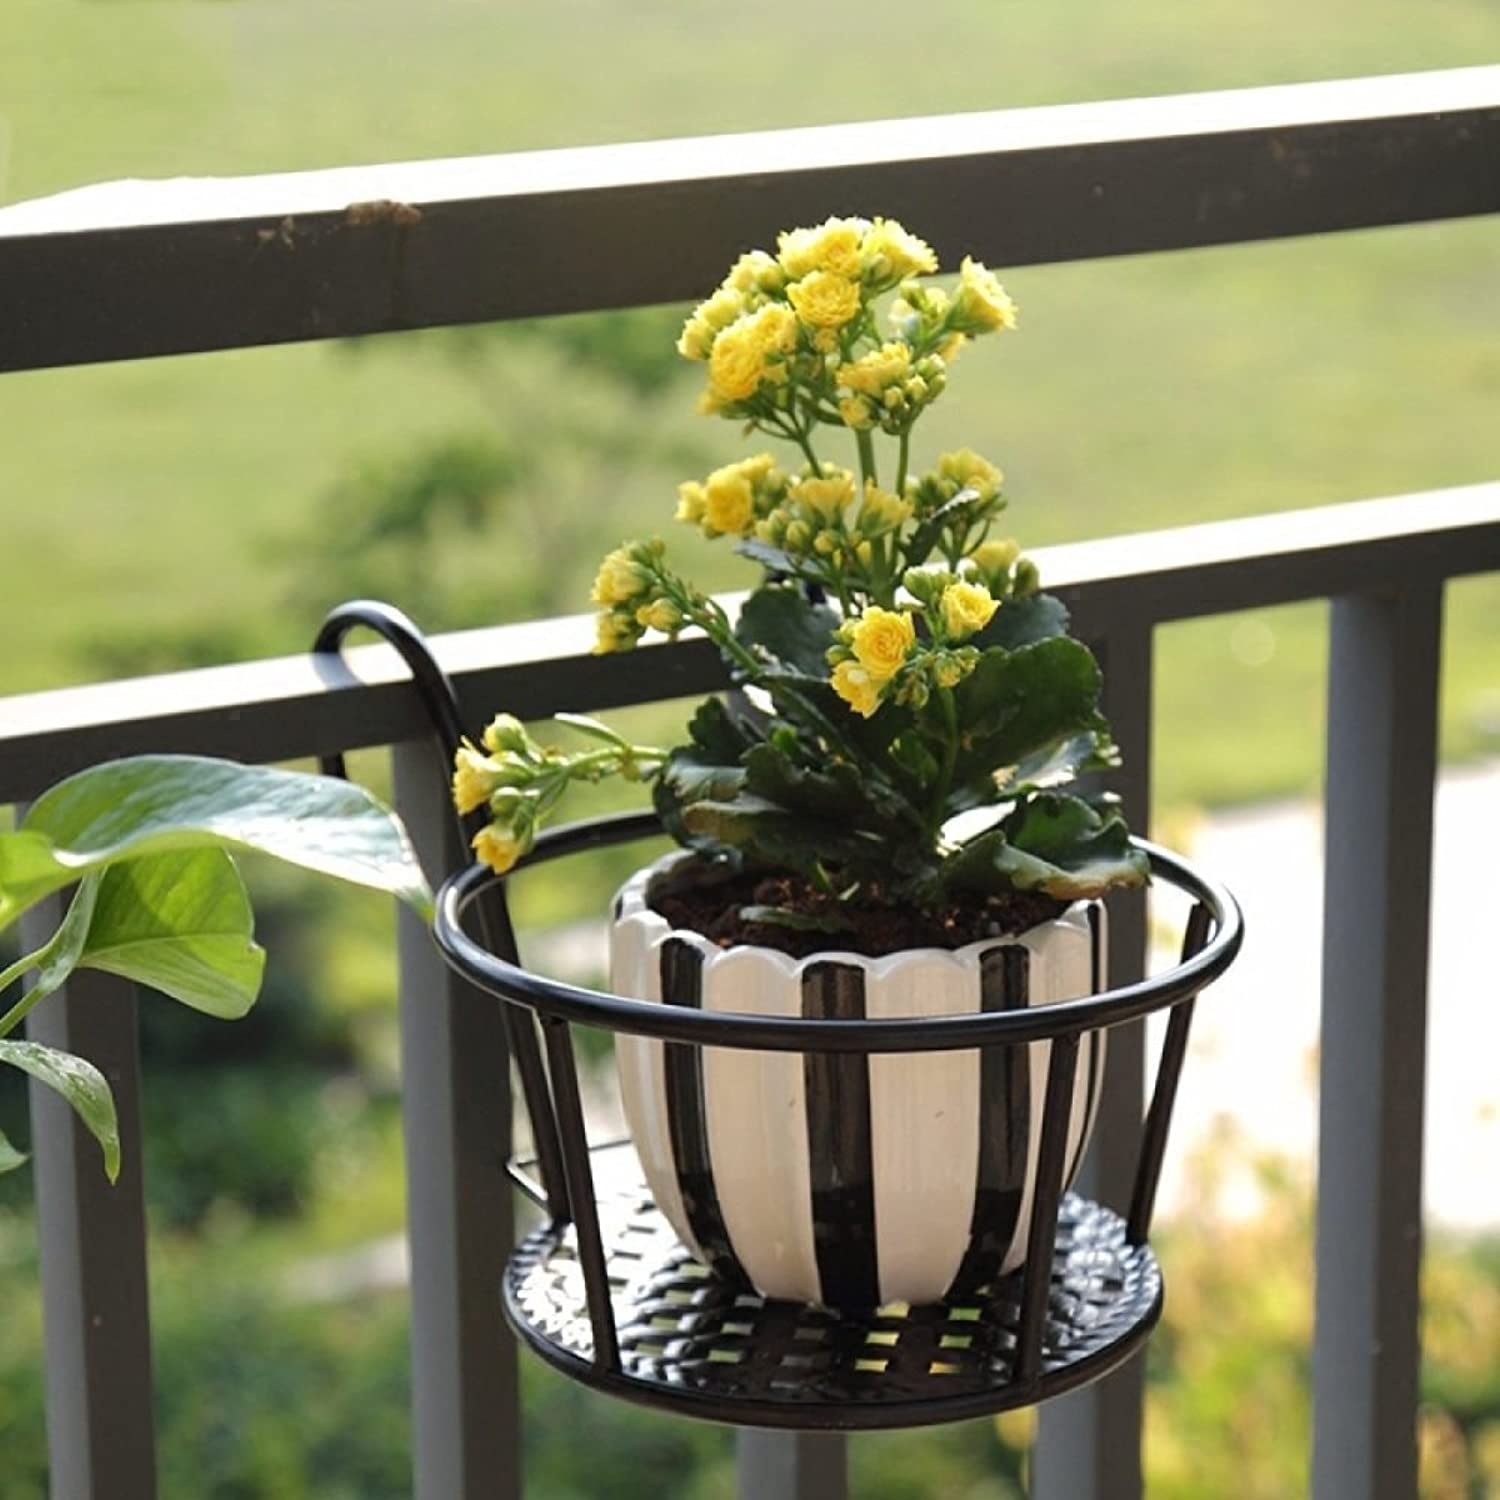 MBD Vintage Balcony Flower Stand, Flower Pot Rack Iron Fence Parapets Windowsill Hanging Flowerpot Railing Hanging Green Plant Bonsai